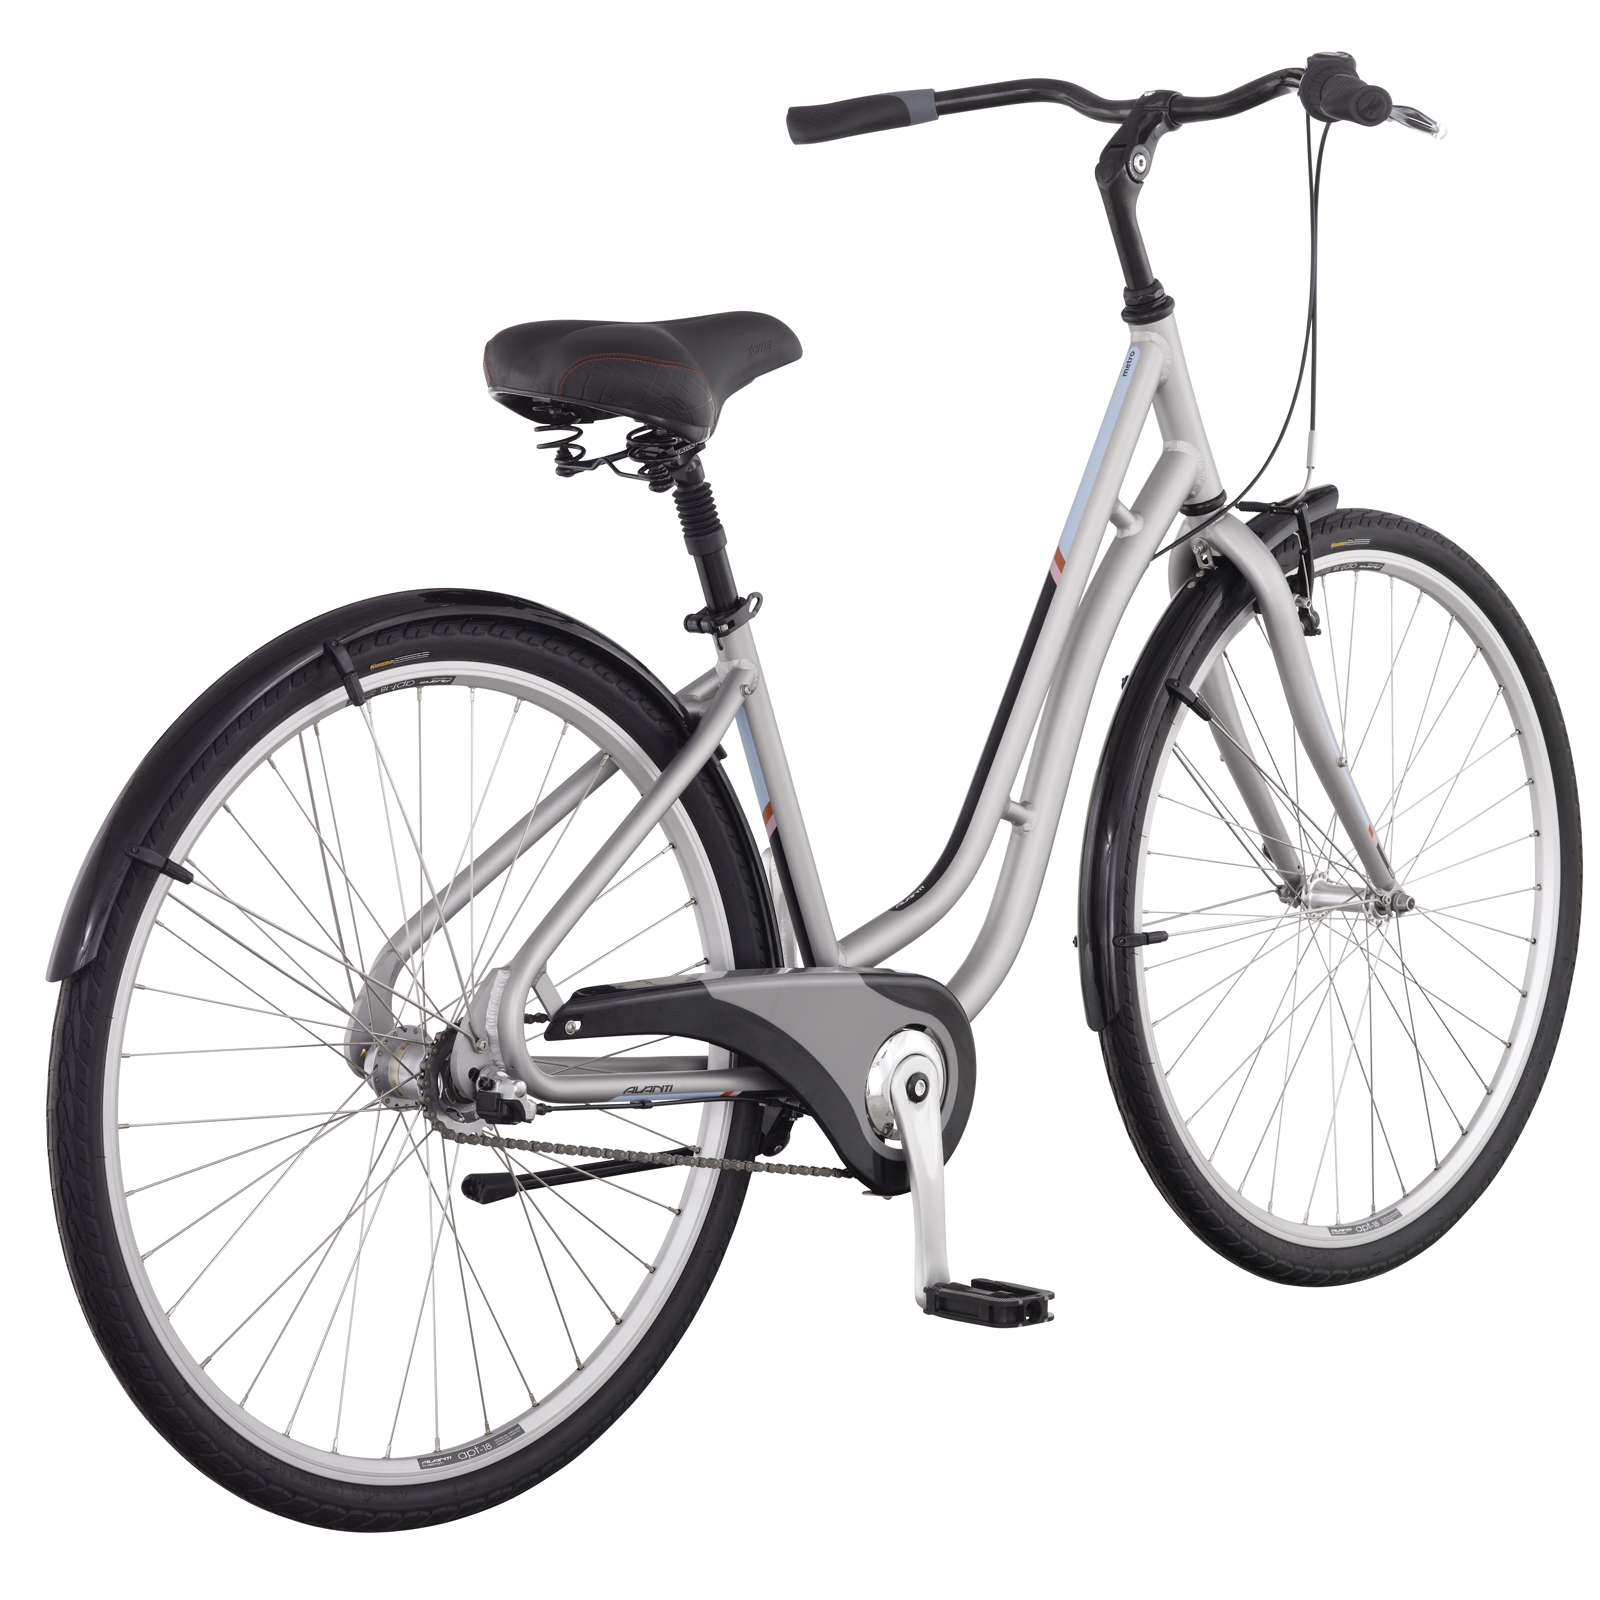 New-Avanti-Mens-Metro-2-Urban-Town-Commuter-Road-Cycle-Comfort-Bike-Silver